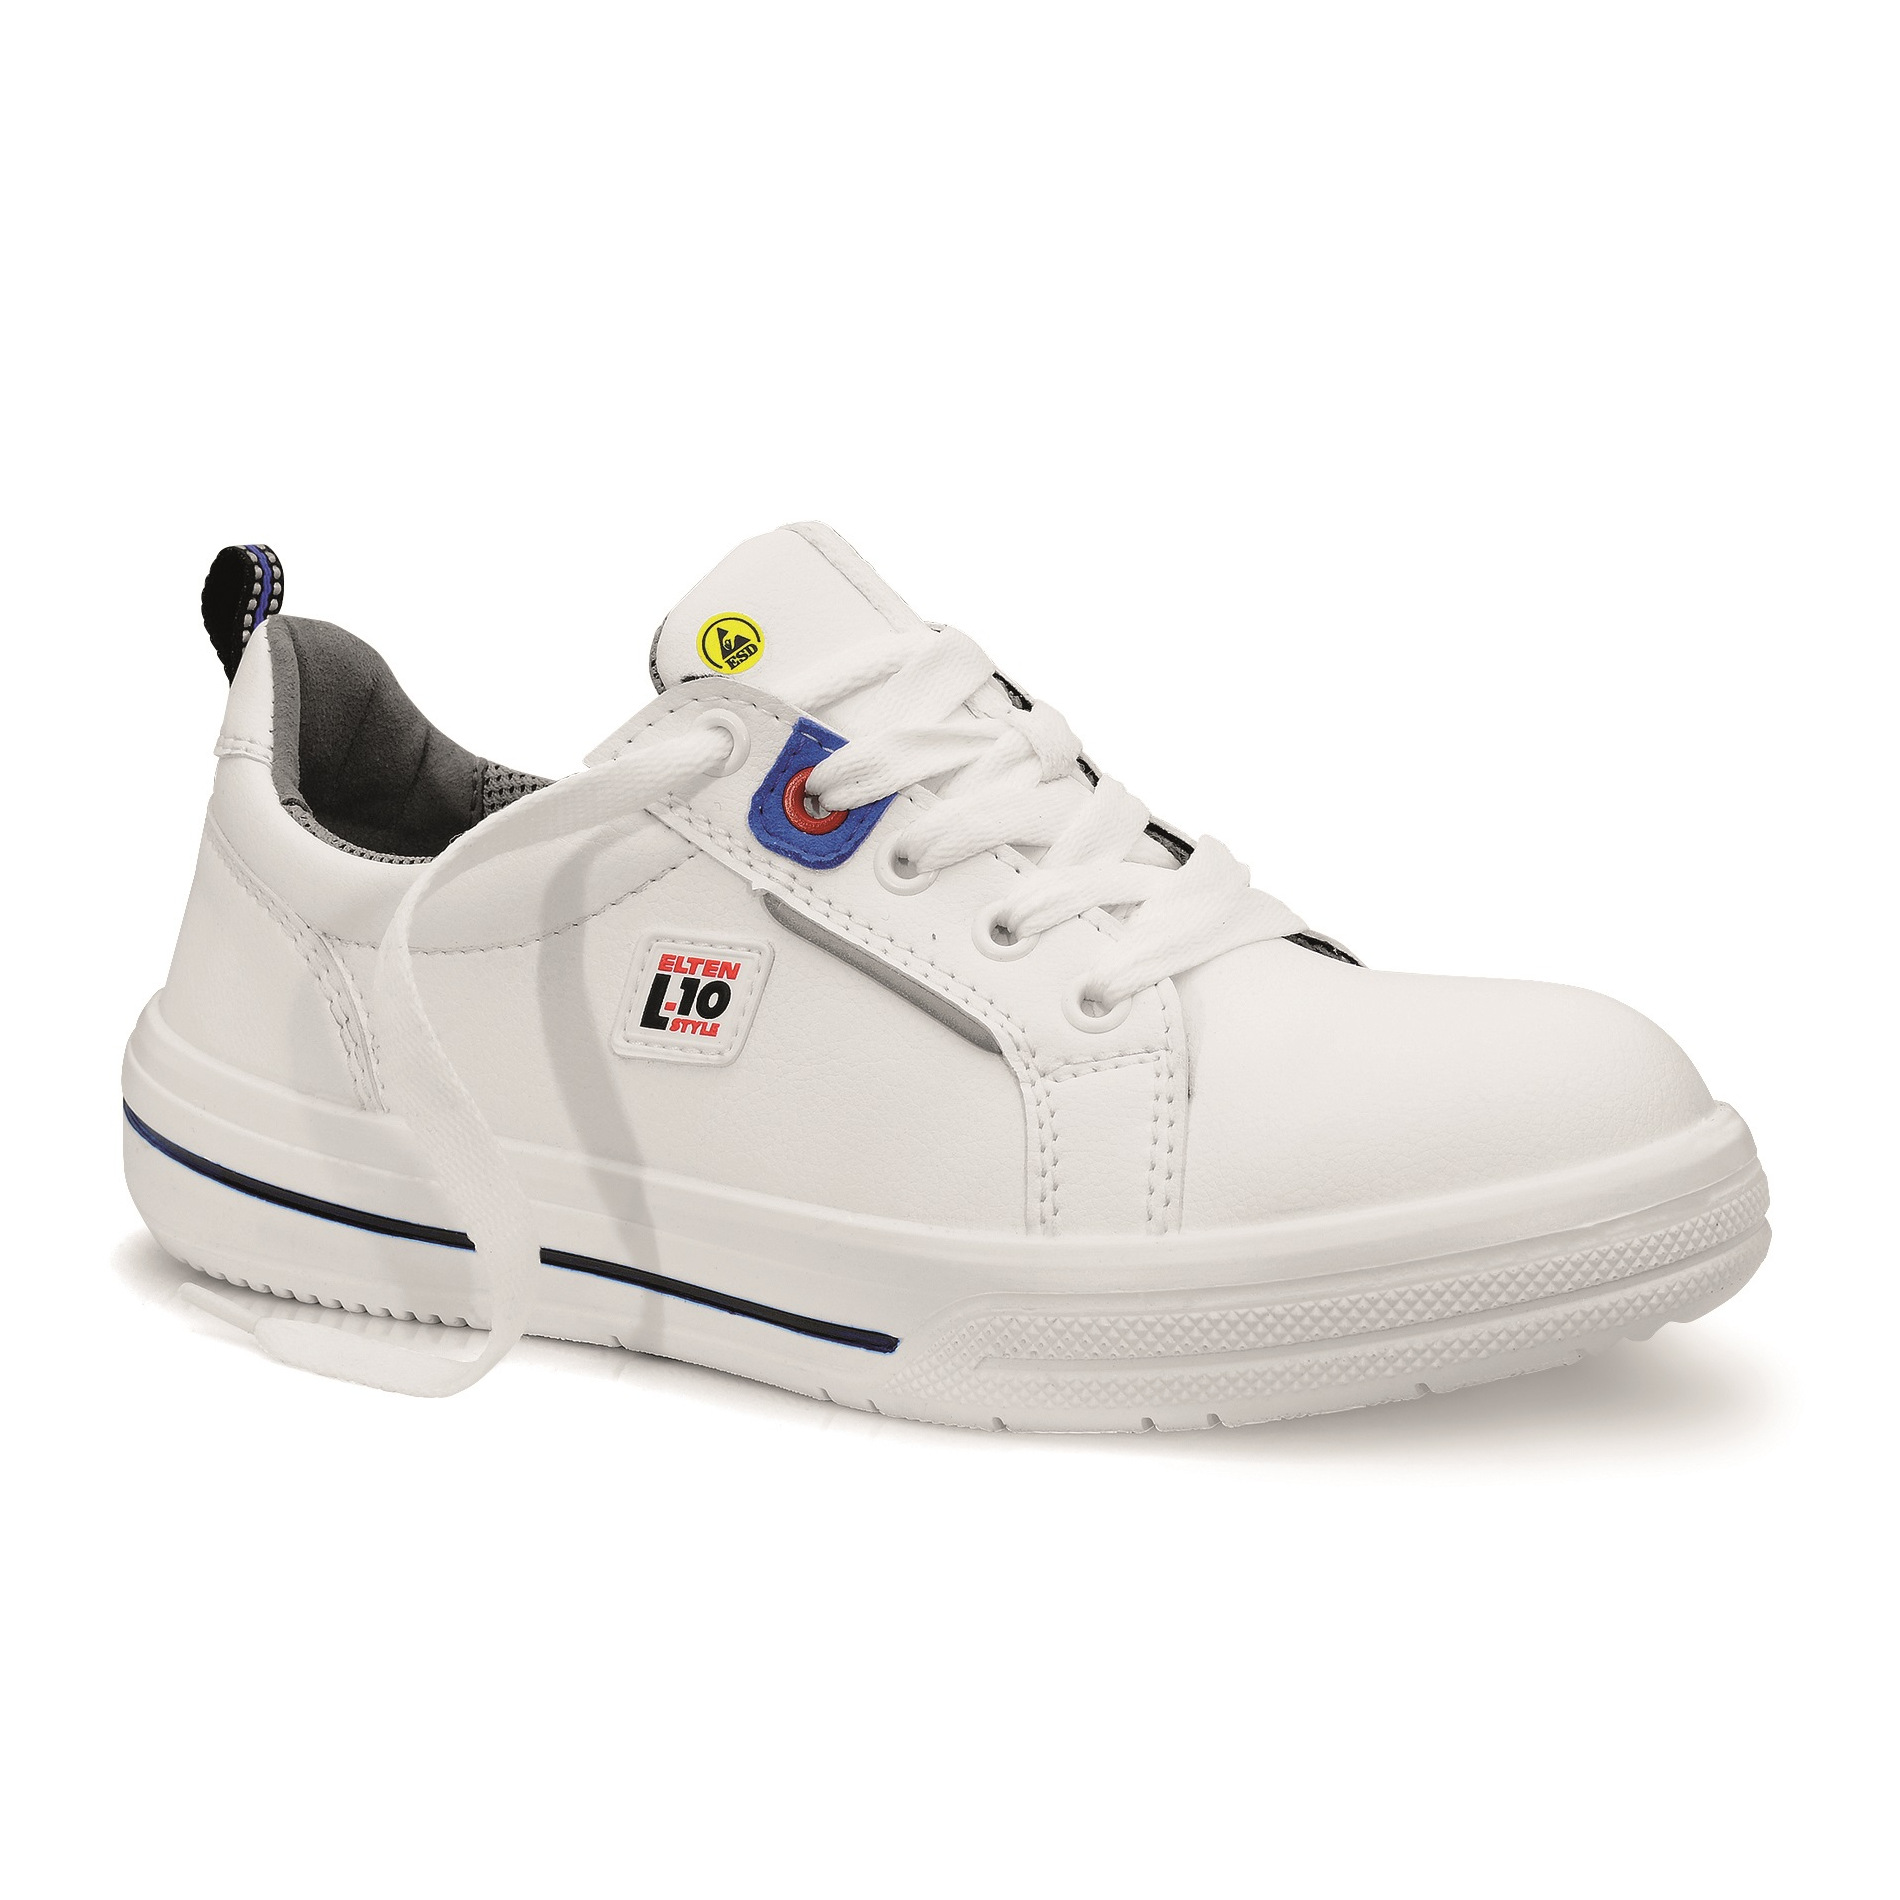 detailed look 51427 5ab1a ELTEN Damen Sicherheitshalbschuh S3 GHOST Lady Low ESD SRC